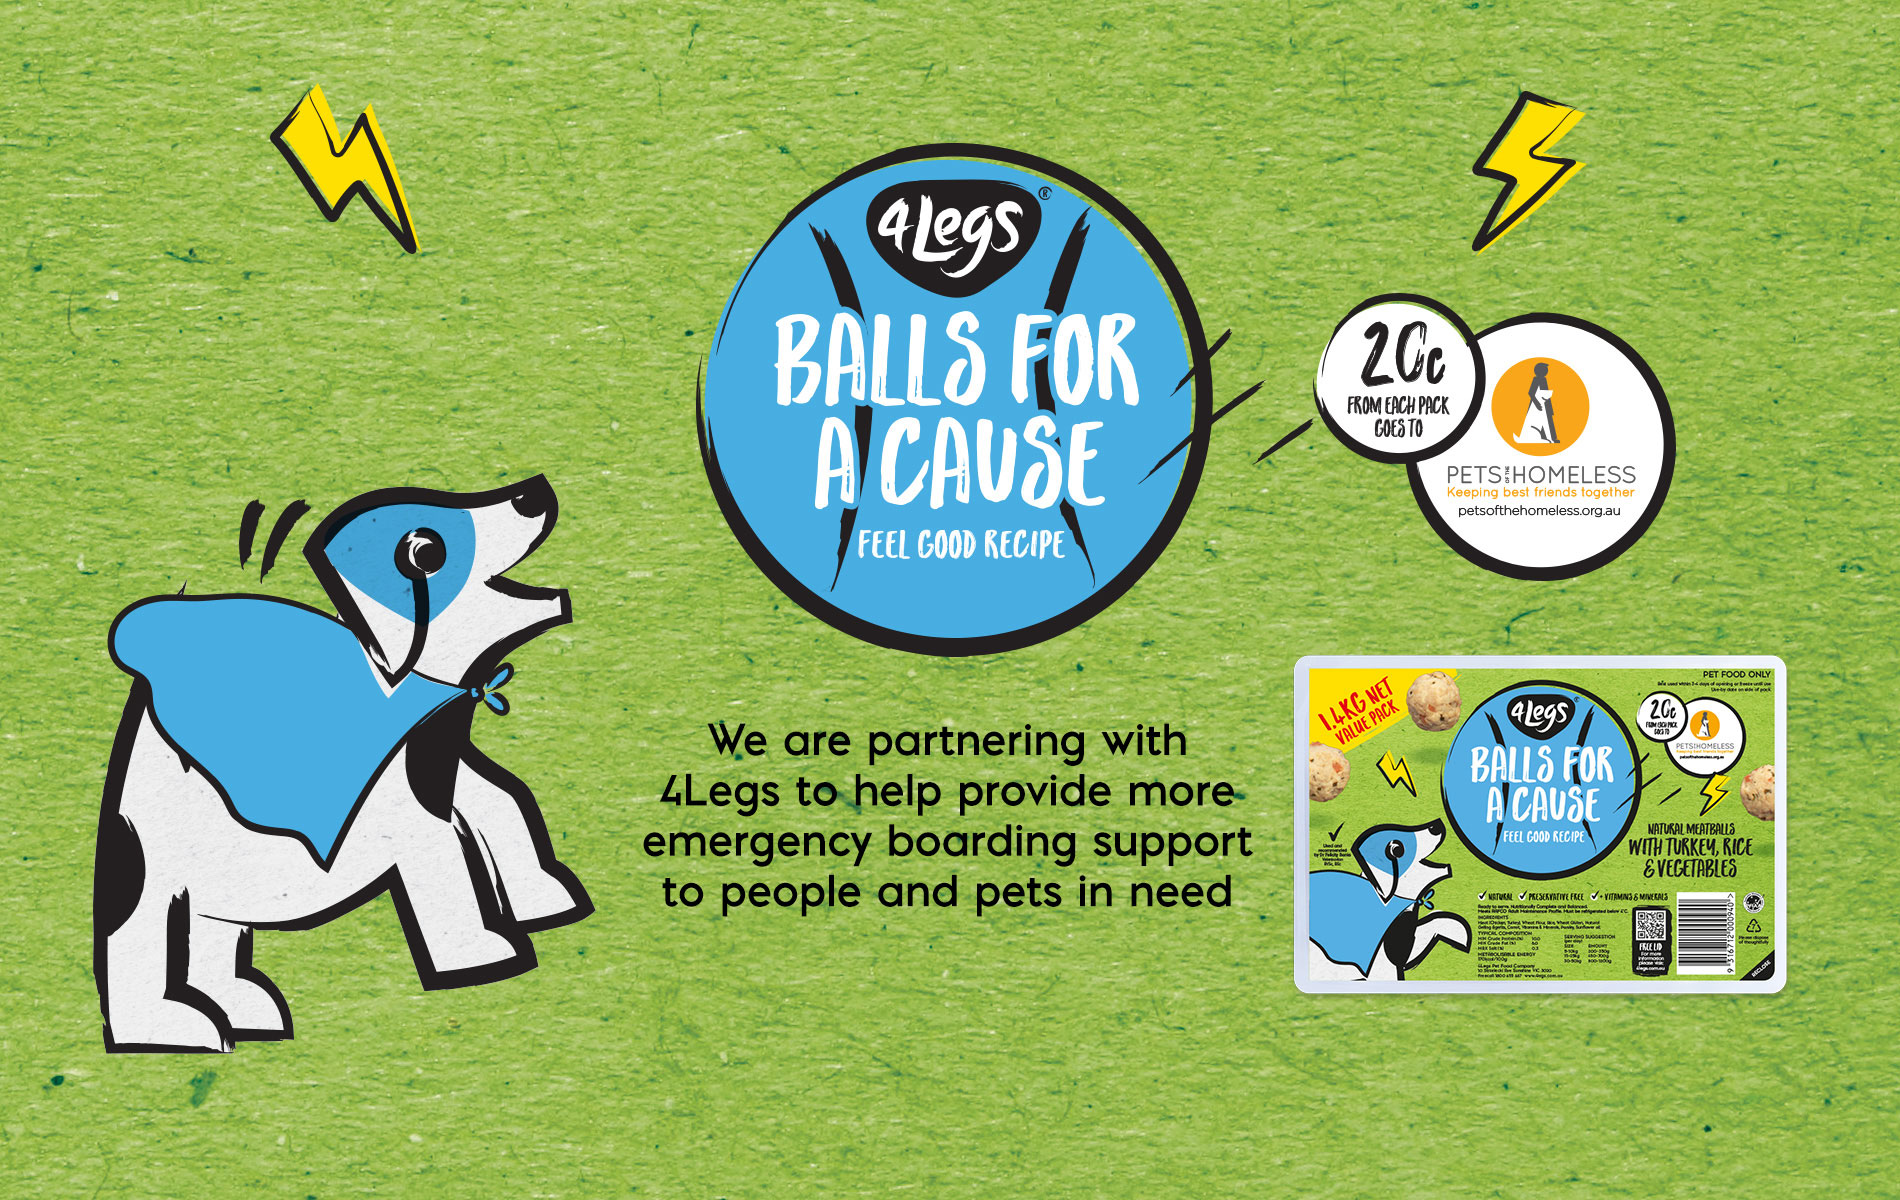 Pets of the Homeless Australia - Ball For A Cause